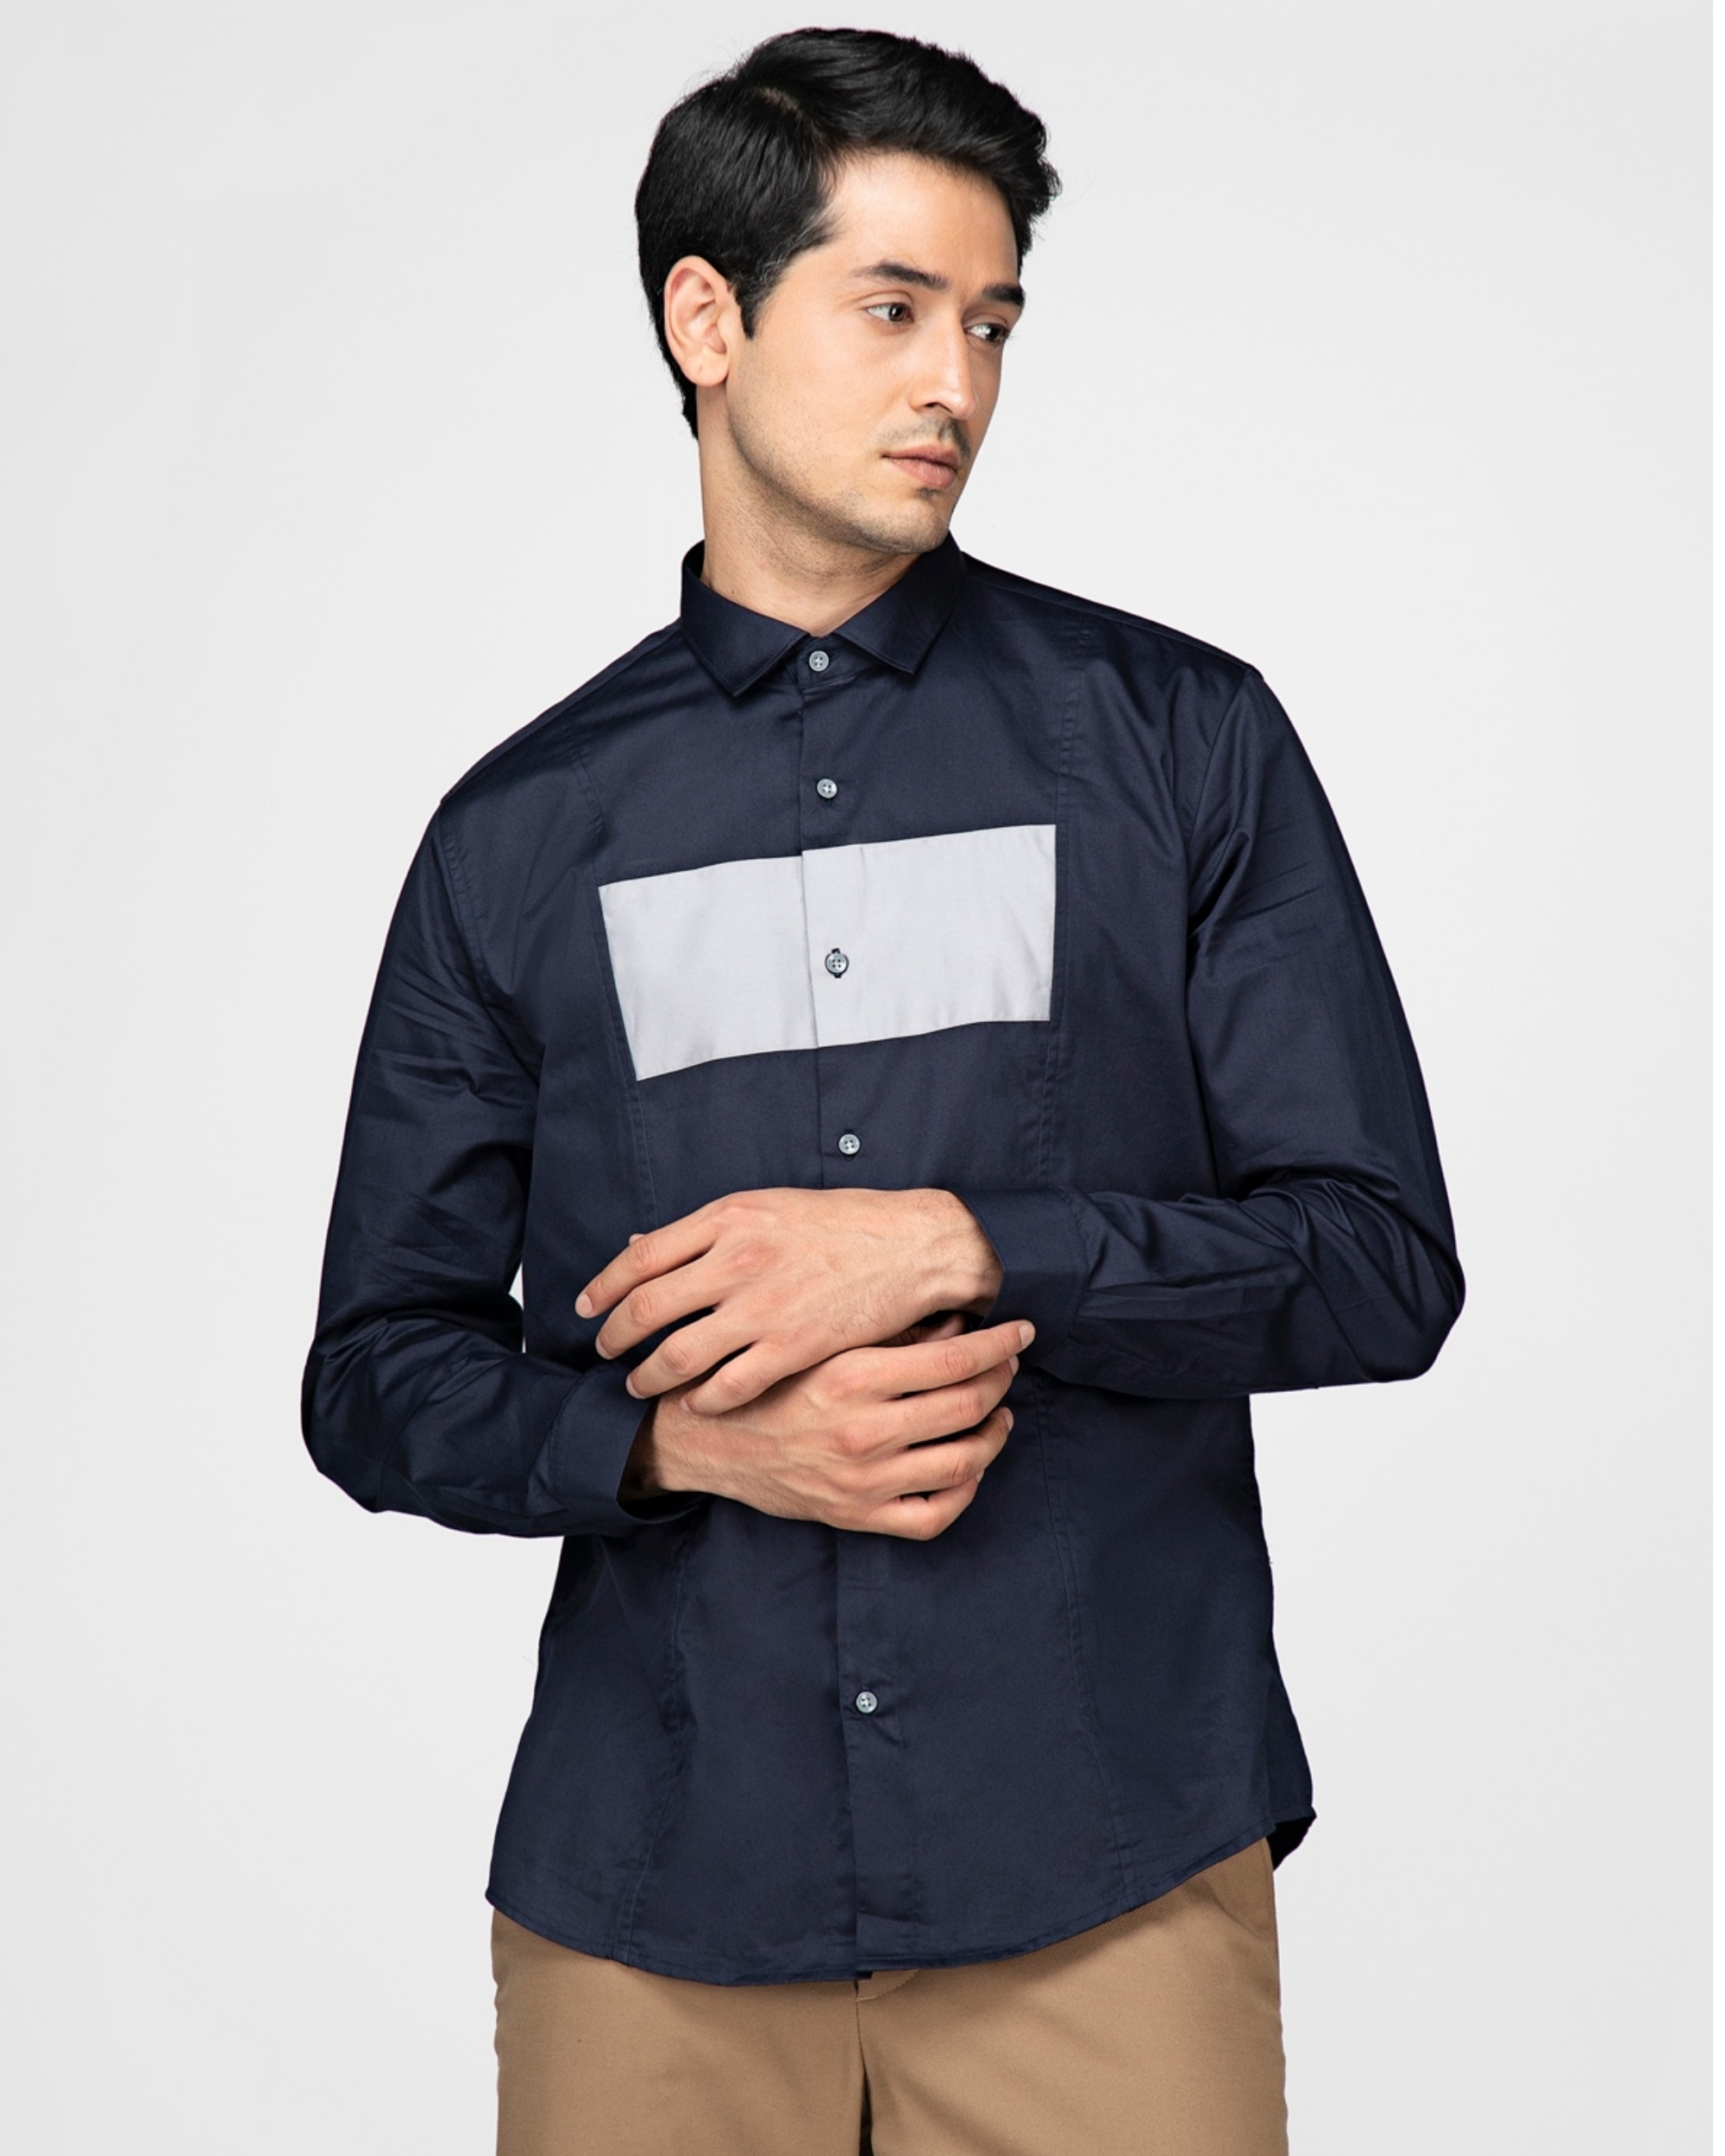 Navy blue and white rectangle paneled shirt